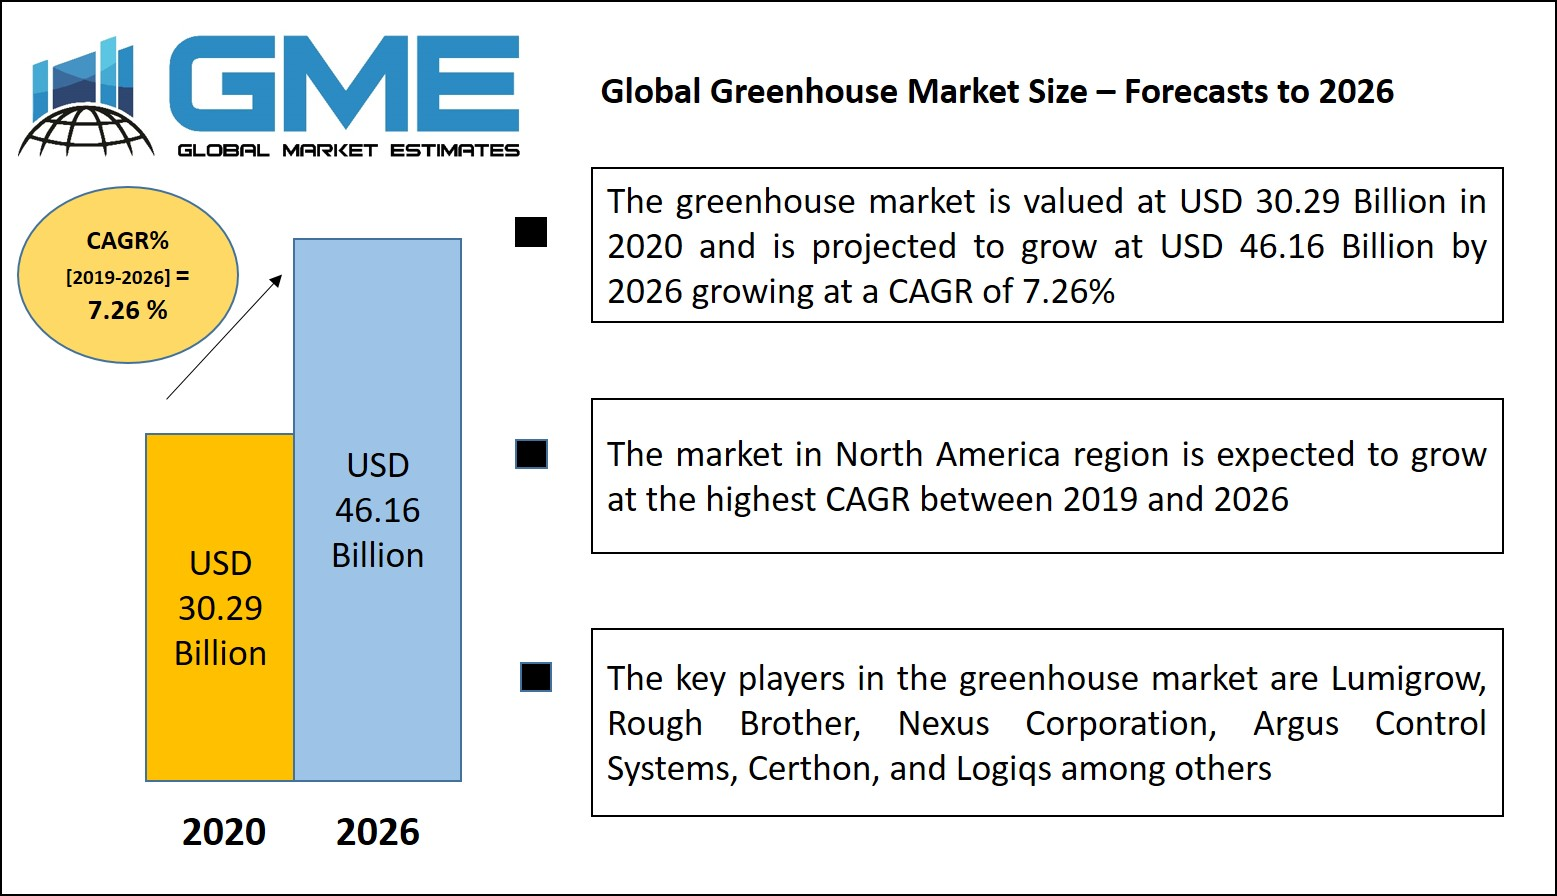 Global Greenhouse Market Size – Forecasts to 2026